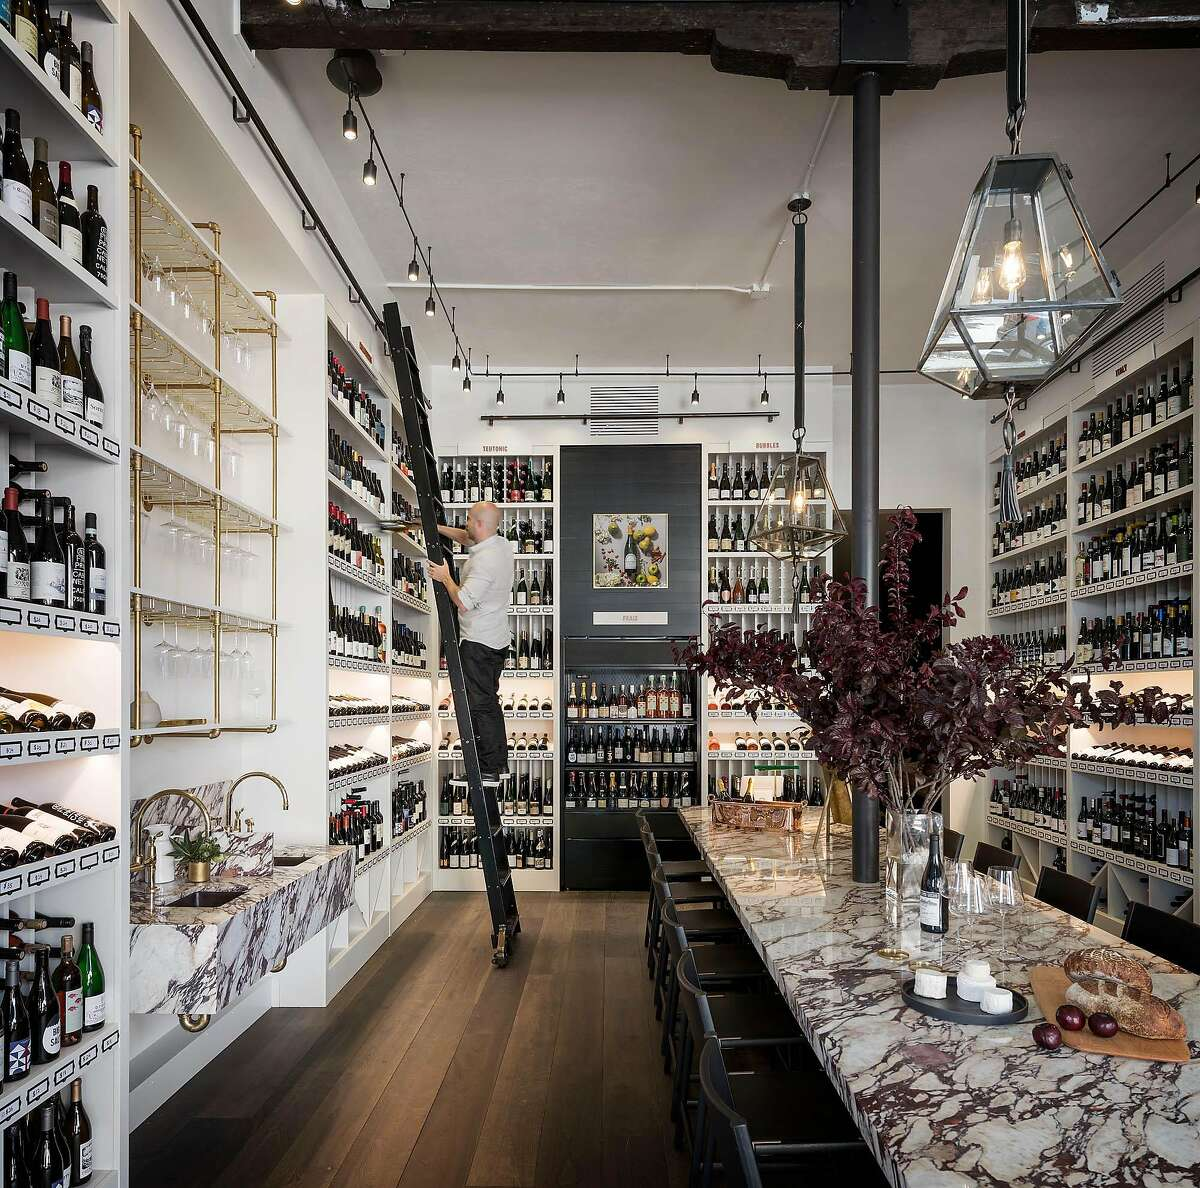 Verve Wine, the new shop from master sommelier Dustin Wilson, is now open in Pacific Heights.